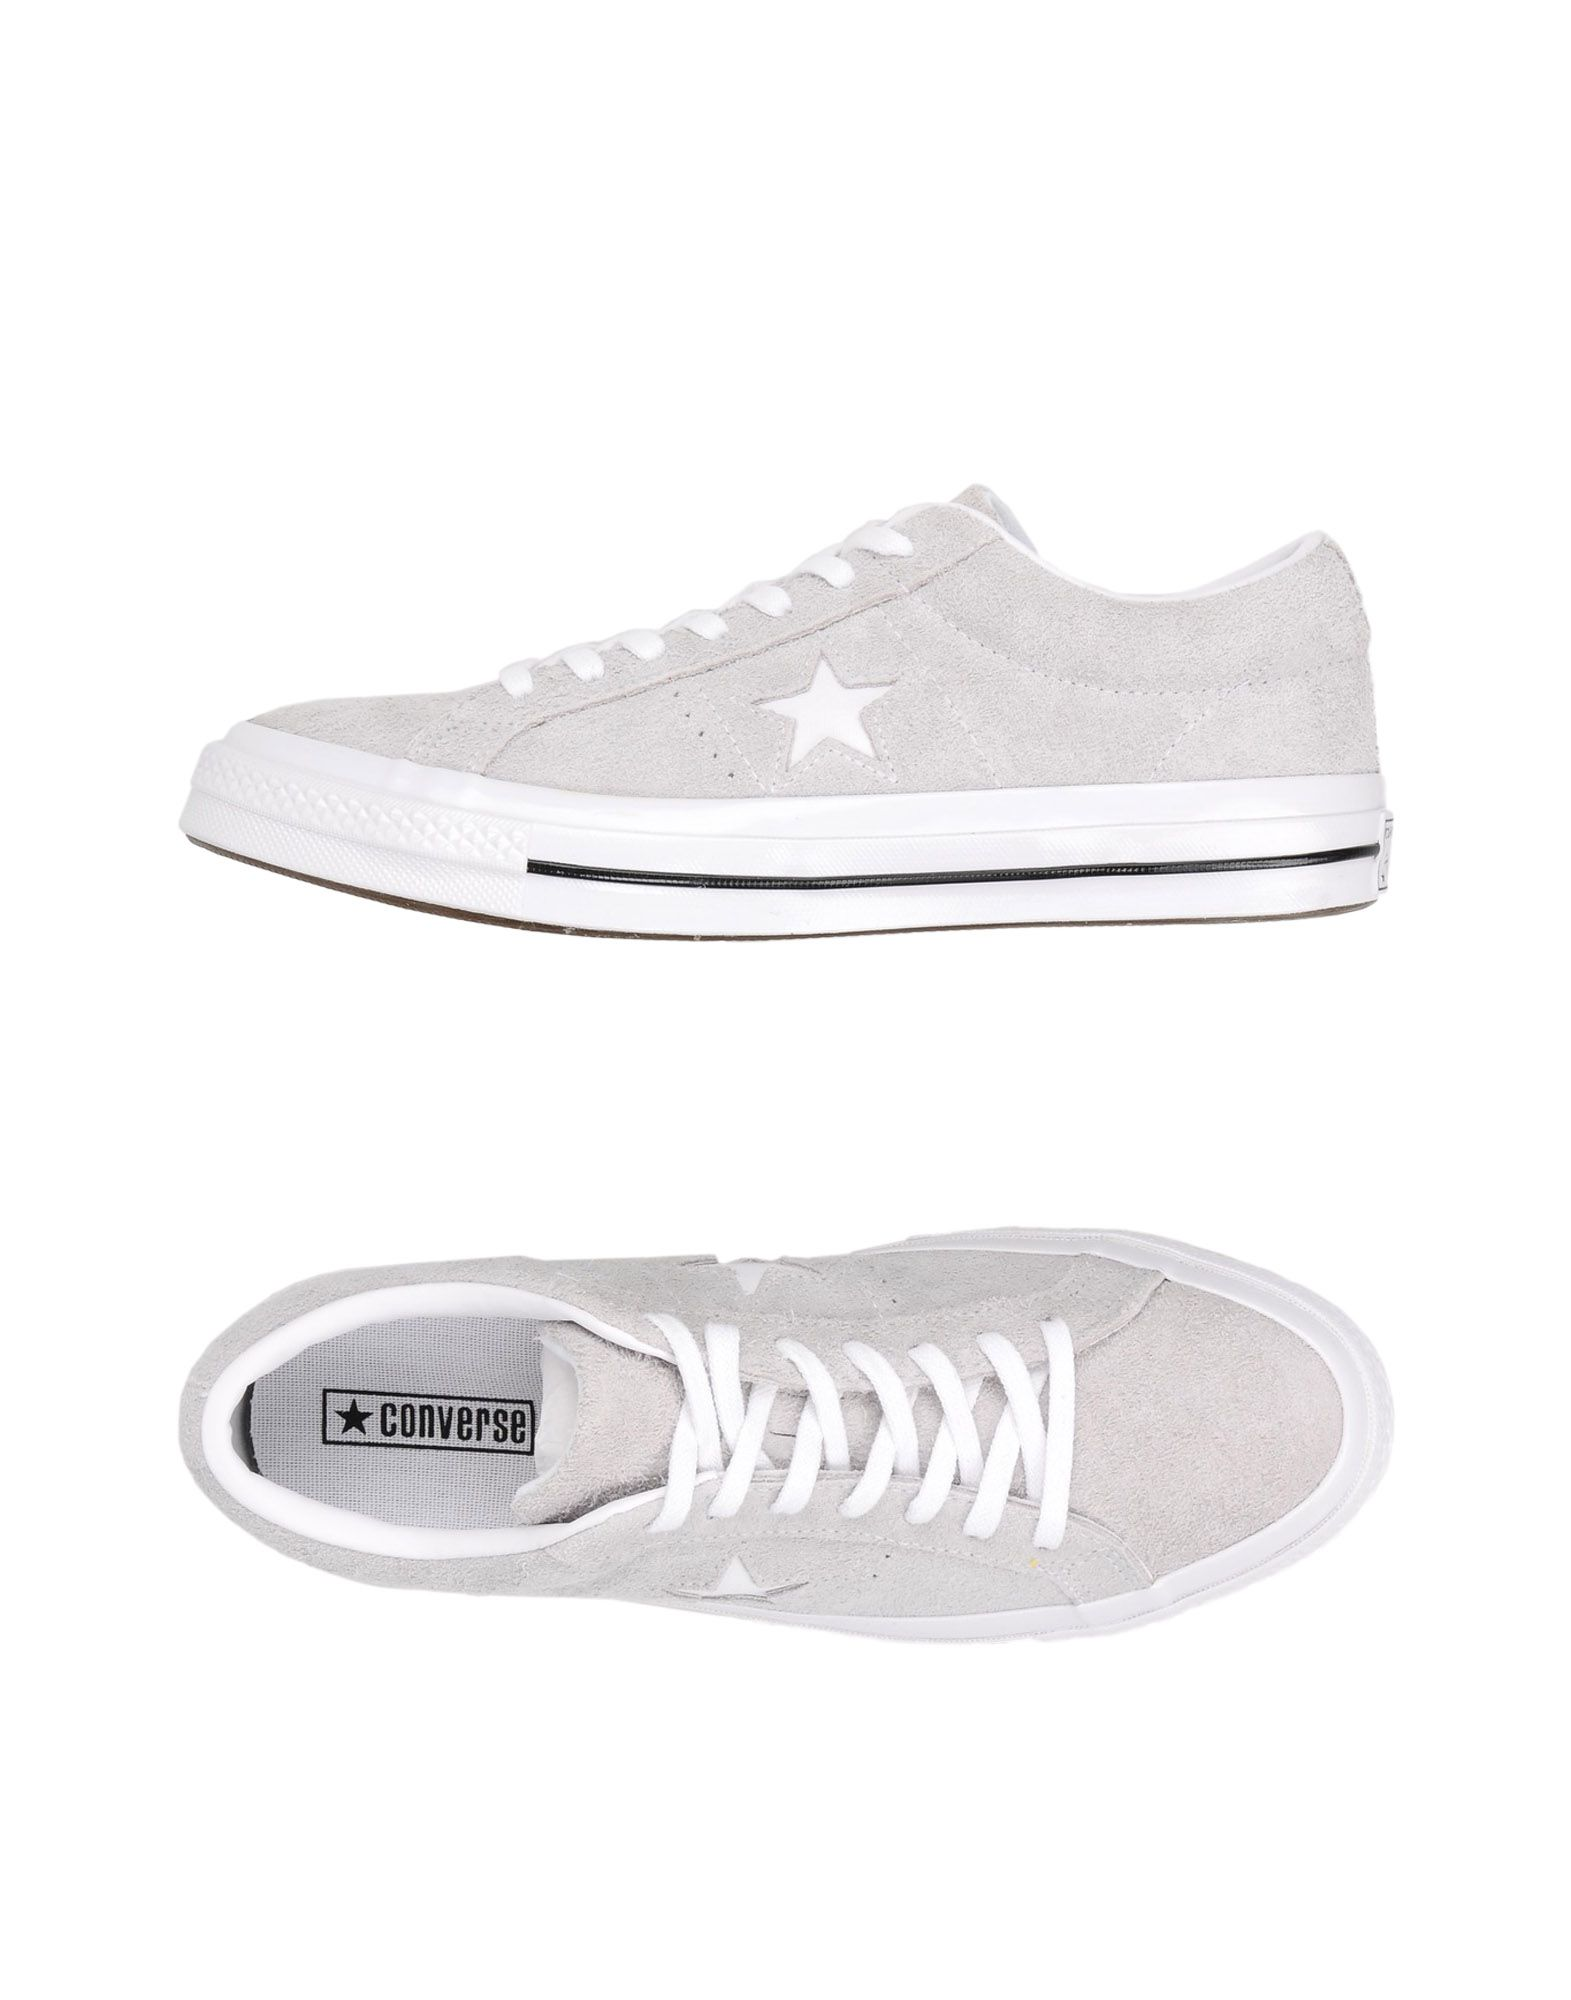 Sneakers Converse All Star One Star Ox Og Suede - Uomo - 11445677AF